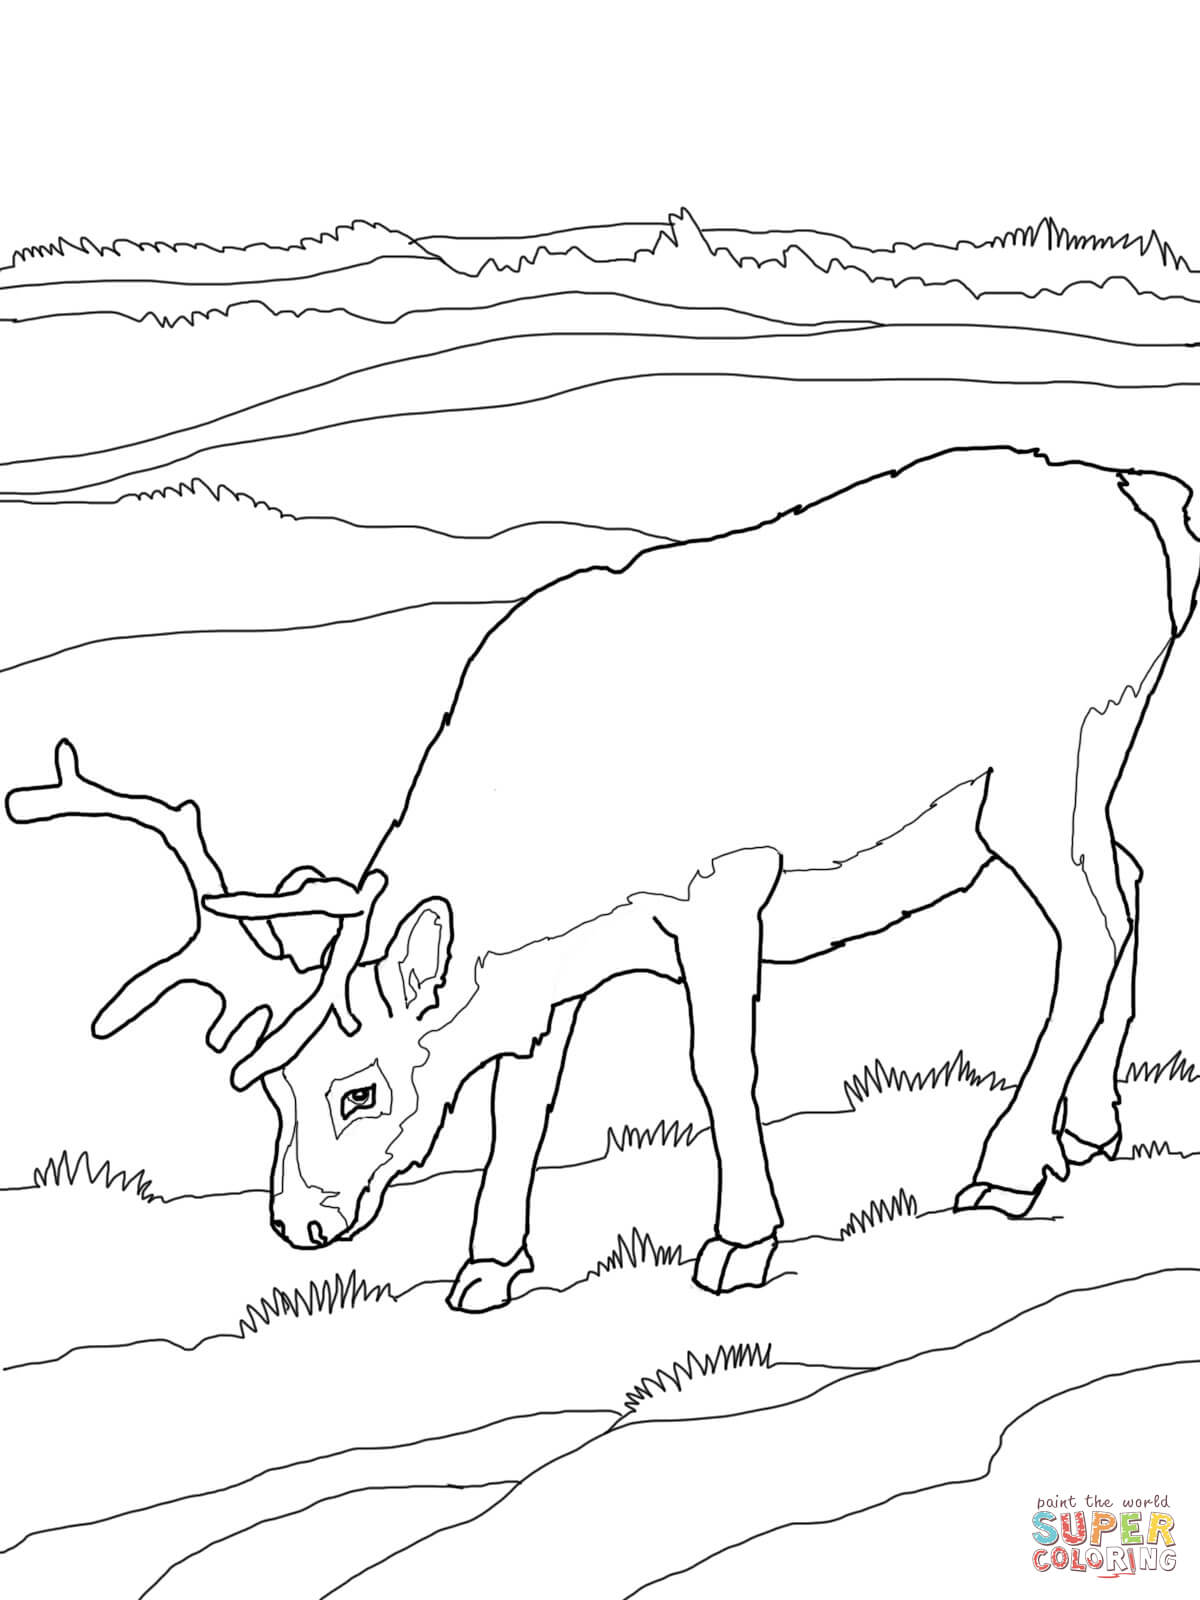 olive the other reindeer coloring page reindeer traceable coloring pages print coloring 2019 olive other page reindeer coloring the